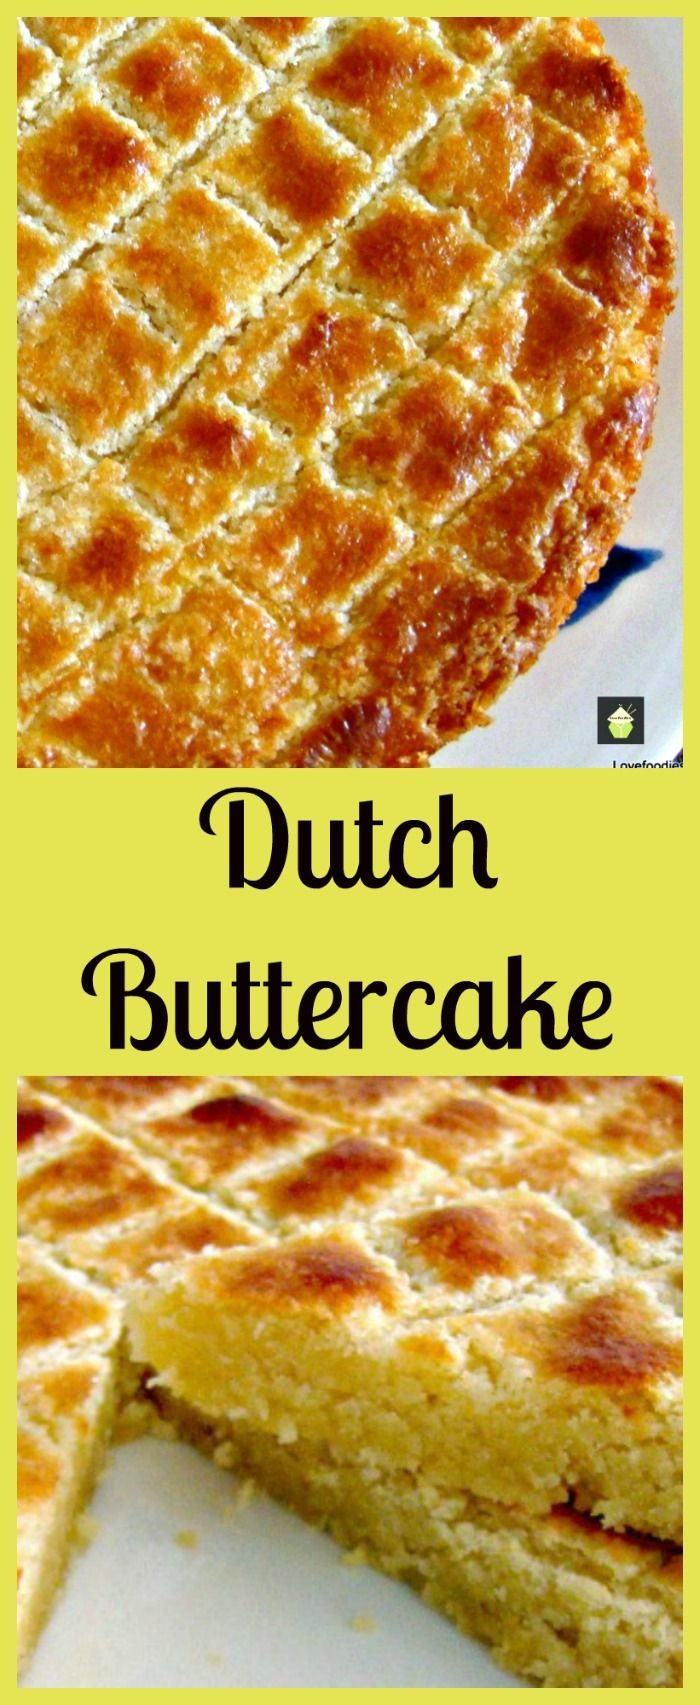 91 best dutch recipes images on pinterest dutch food dutch second recipe to try dutch buttercake boterkoek this is a moist soft butter cake famous in the netherlands often served with a cup of coffee forumfinder Gallery